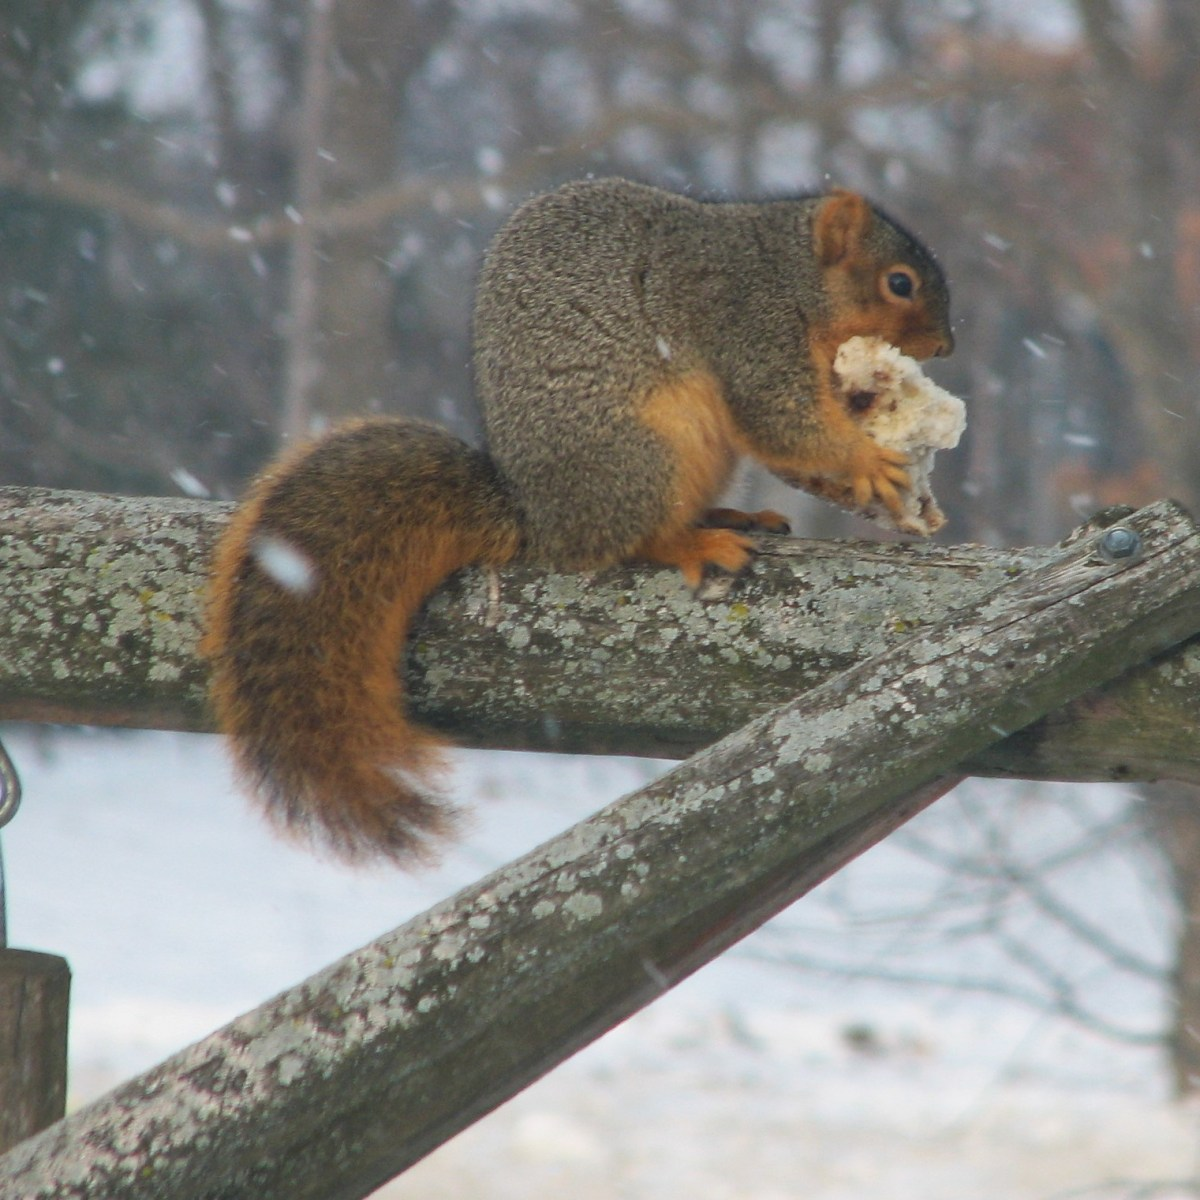 A fox squirrel stands on a log platform eating bread as snow falls around it